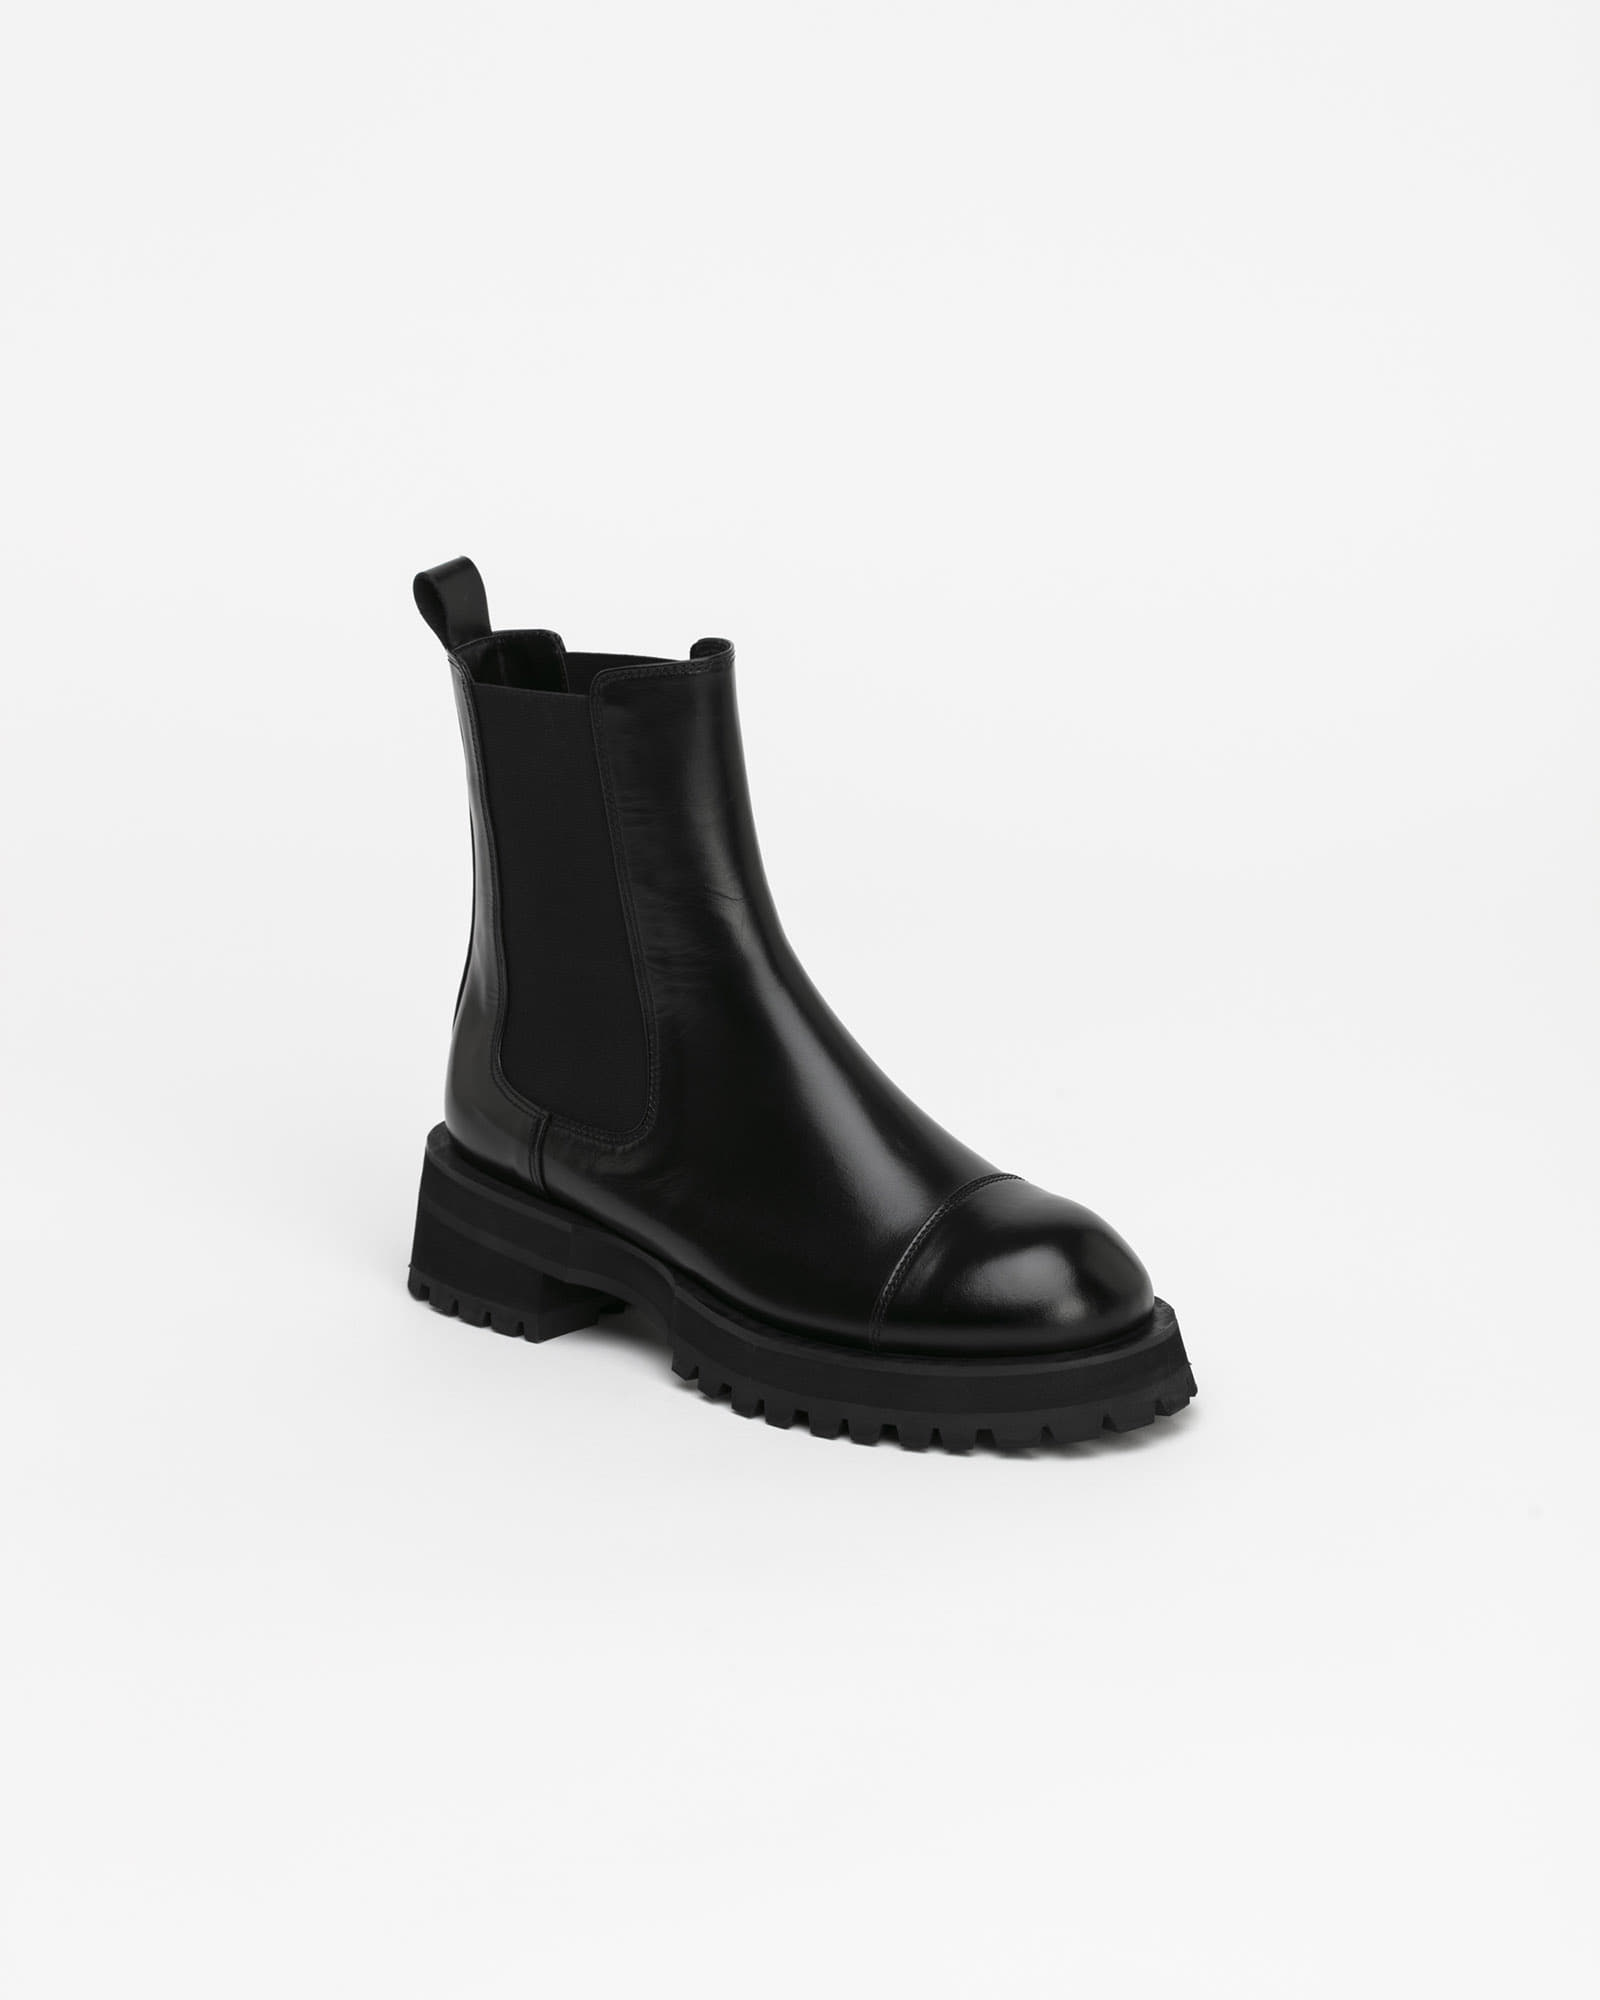 Lapost Chelsea Boots in Black